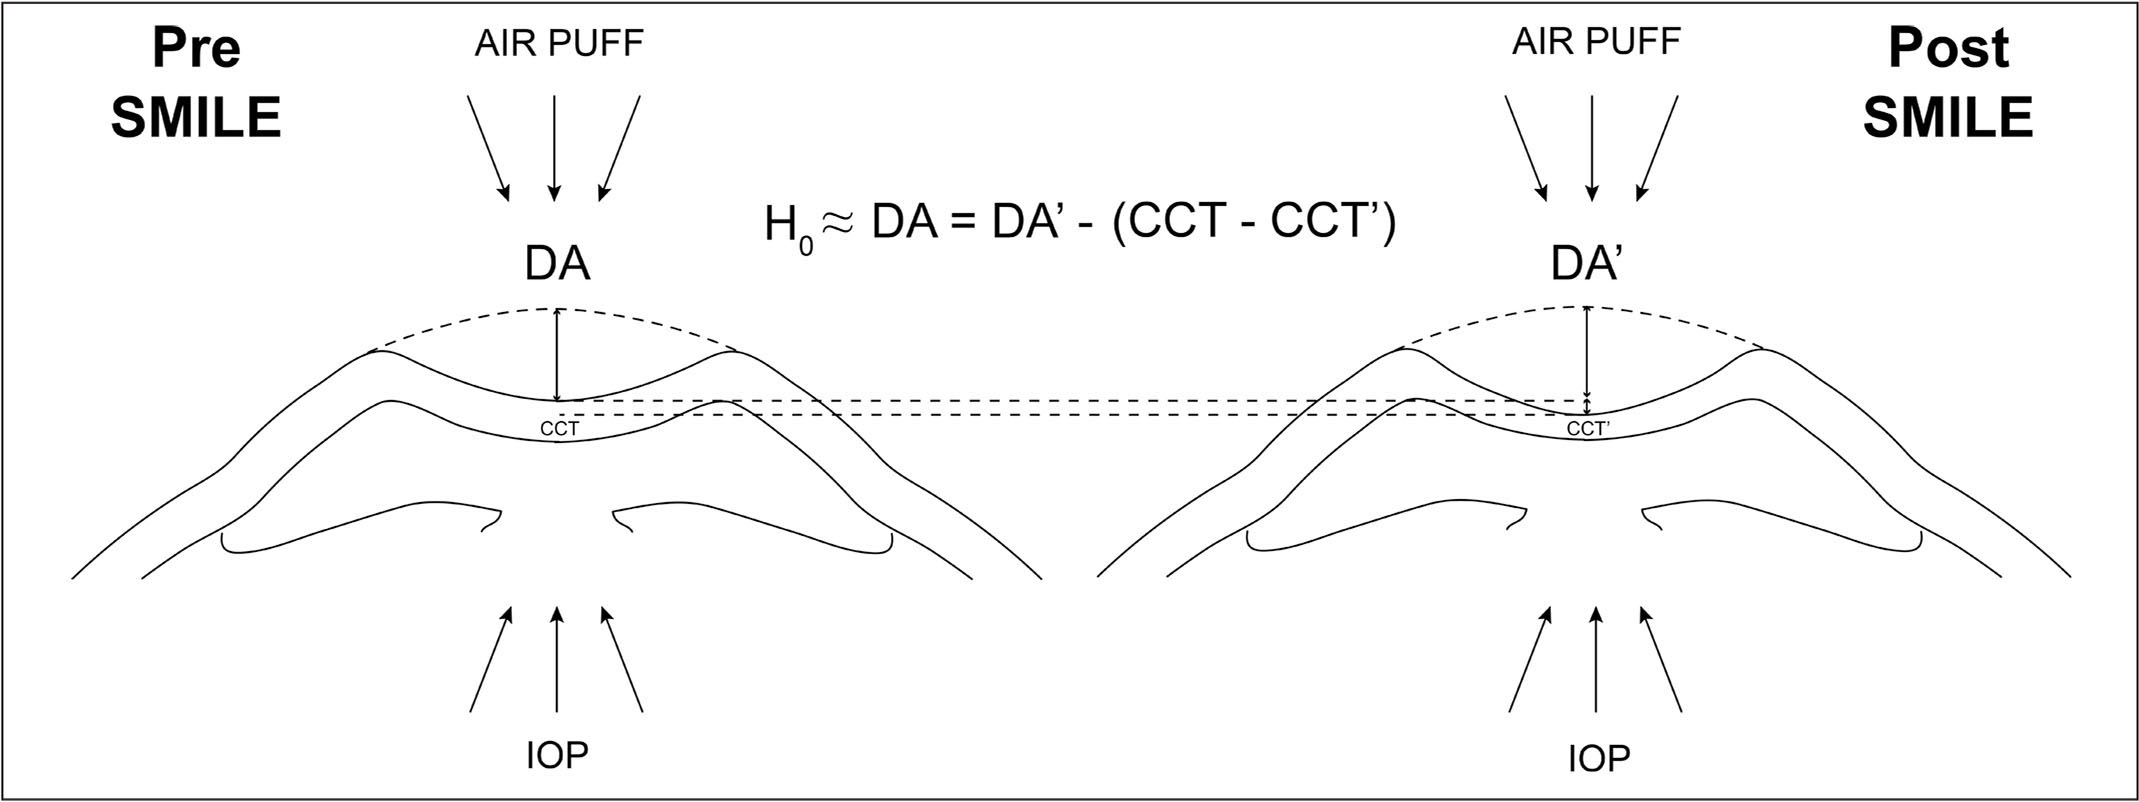 Schematic showing the definition of corrected deformation amplitude (DA) depending on the removed corneal thickness. CCT = central corneal thickness; CCT' = central corneal thickness at 1 month postoperatively; DA' = deformation amplitude at 1 month postoperatively; IOP = intraocular pressure; SMILE = small incision lenticule extraction